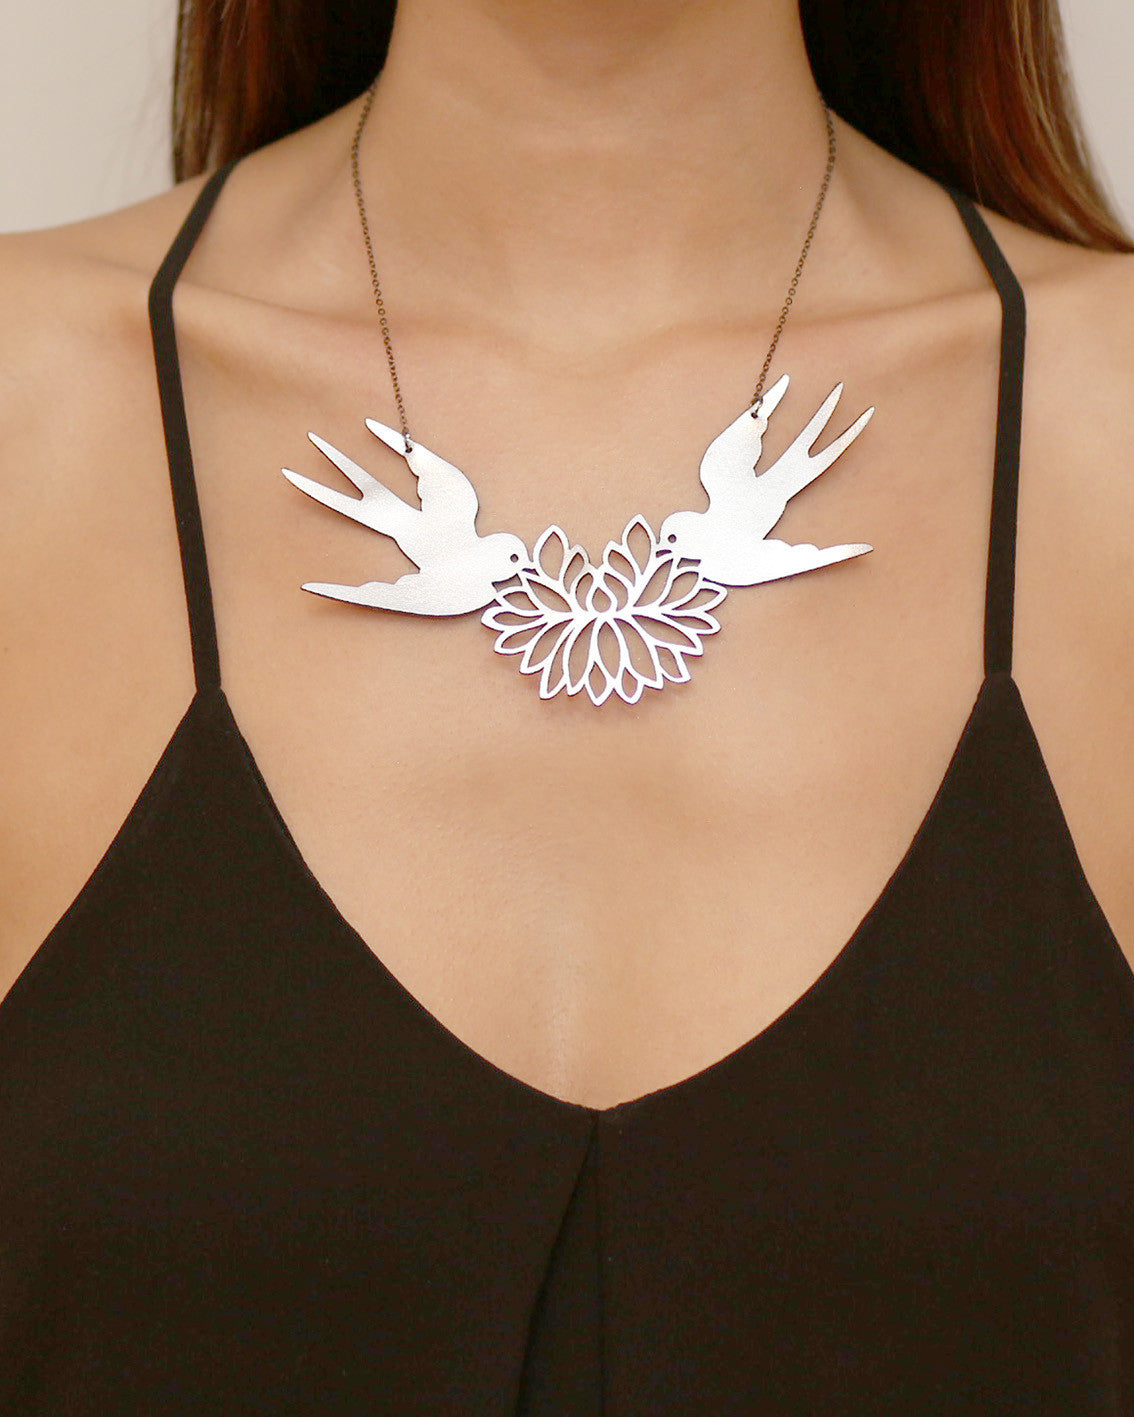 Turtle Doves Necklace Silver